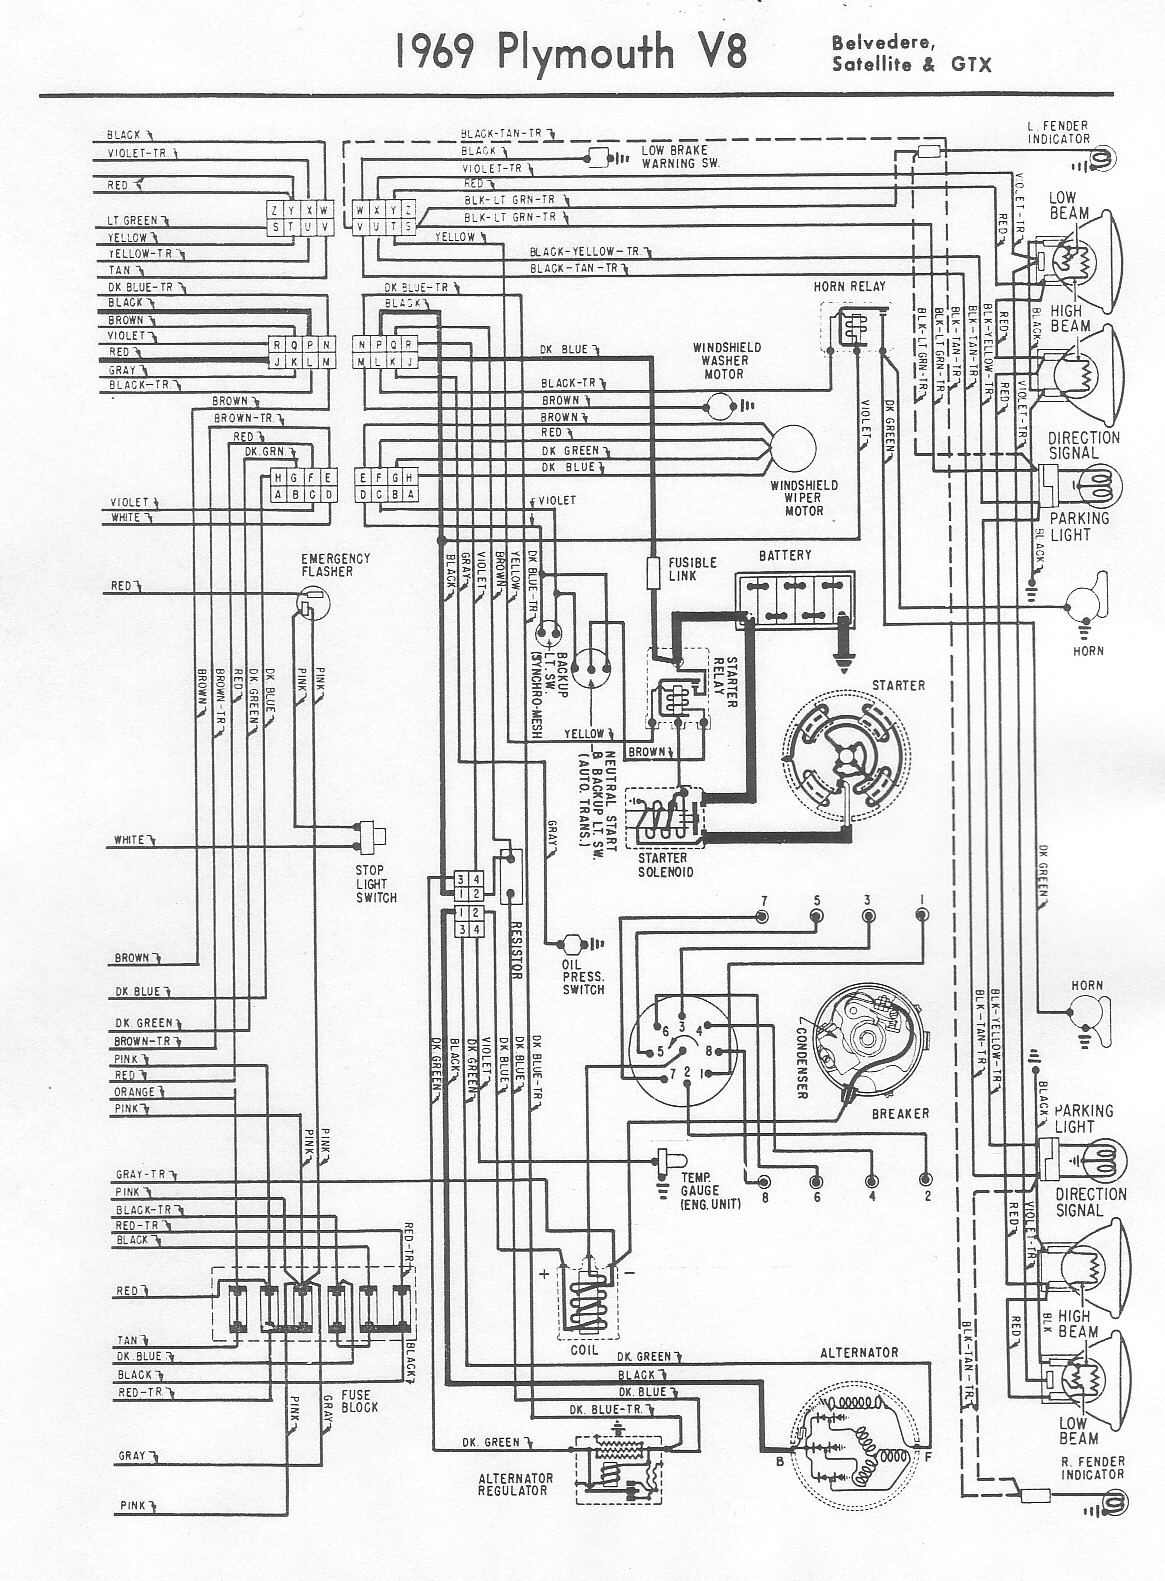 68 Plymouth Barracuda Wiring Diagram - 07 Jetta Fuse Box Diagram for Wiring  Diagram SchematicsWiring Diagram Schematics